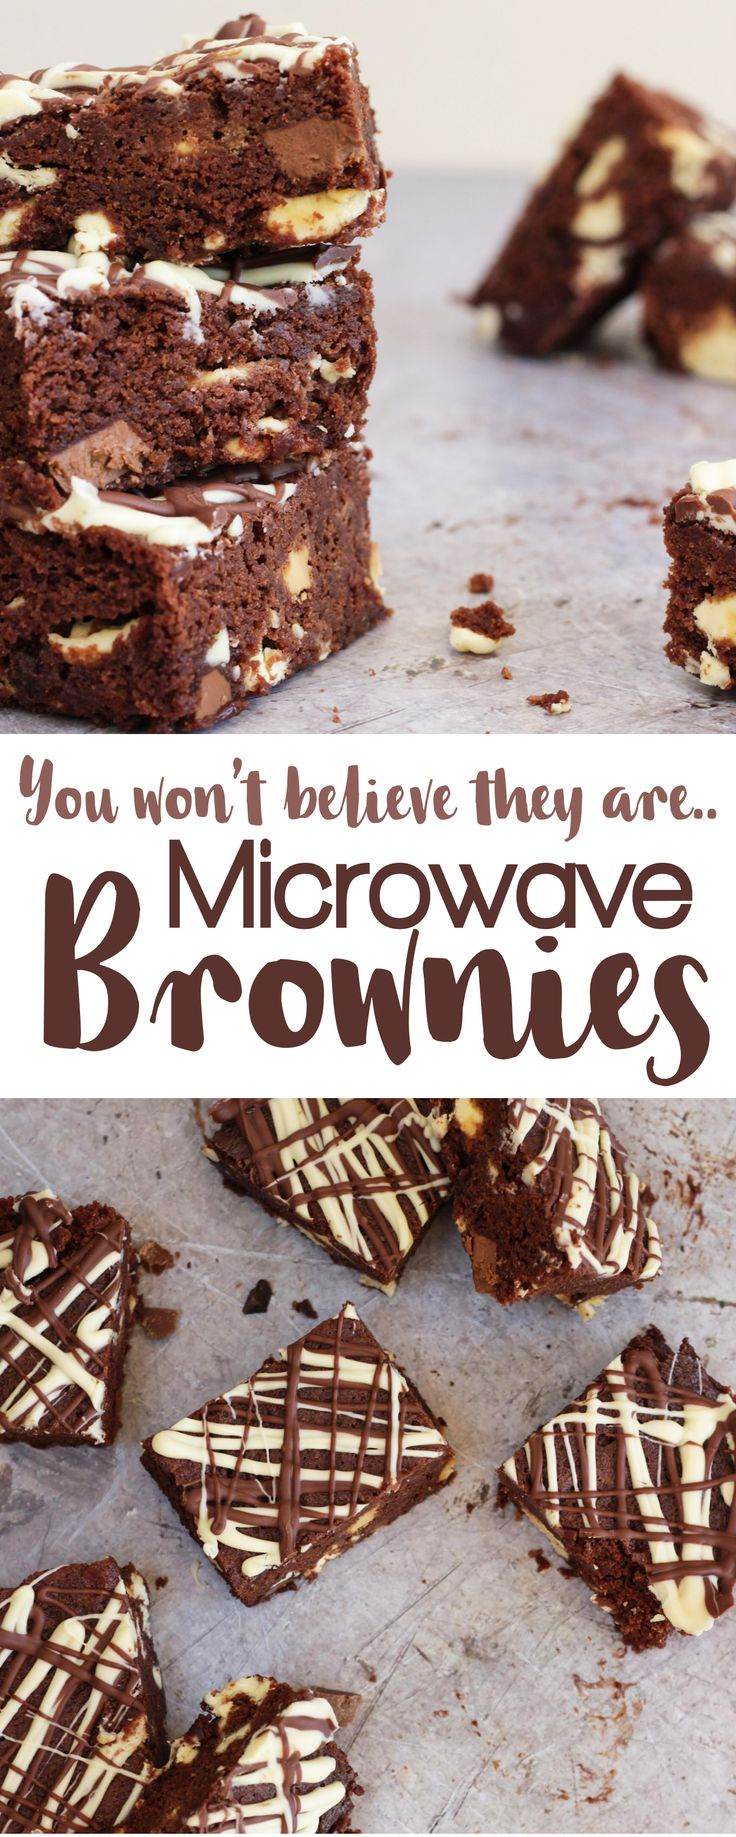 Double Chocolate Microwave Brownies - Stop what you're doing, microwave brownies are a thing and they ARE SO GOOD! They can be yours in under 30 minutes... Fudgy, chocolatey deliciousness microwaved in a flash. The perfect cake, pudding, dessert, gift or treat, these are the real deal! http://www.tamingtwins.com